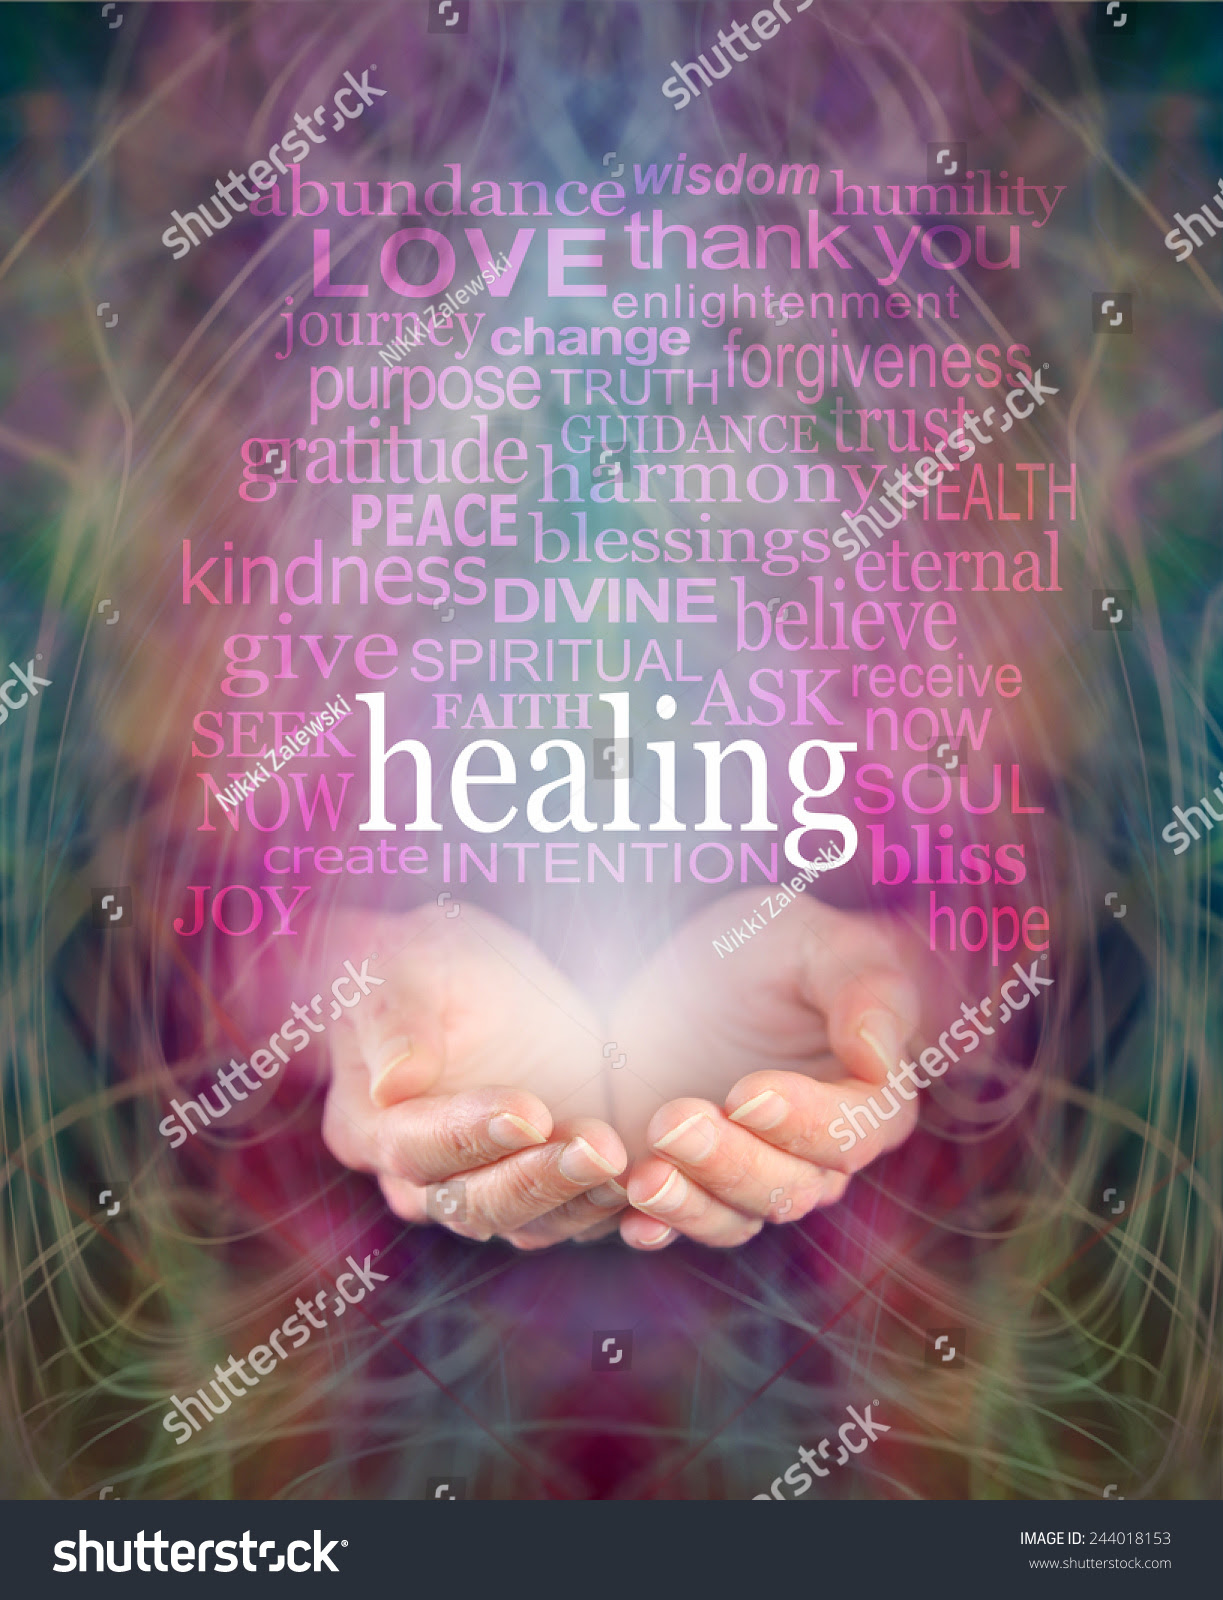 stock-photo-receiving-healing-female-cupped-hands-with-the-word-healing-floating-above-surrounded-by-a-word-244018153.jpg (1222×1600)